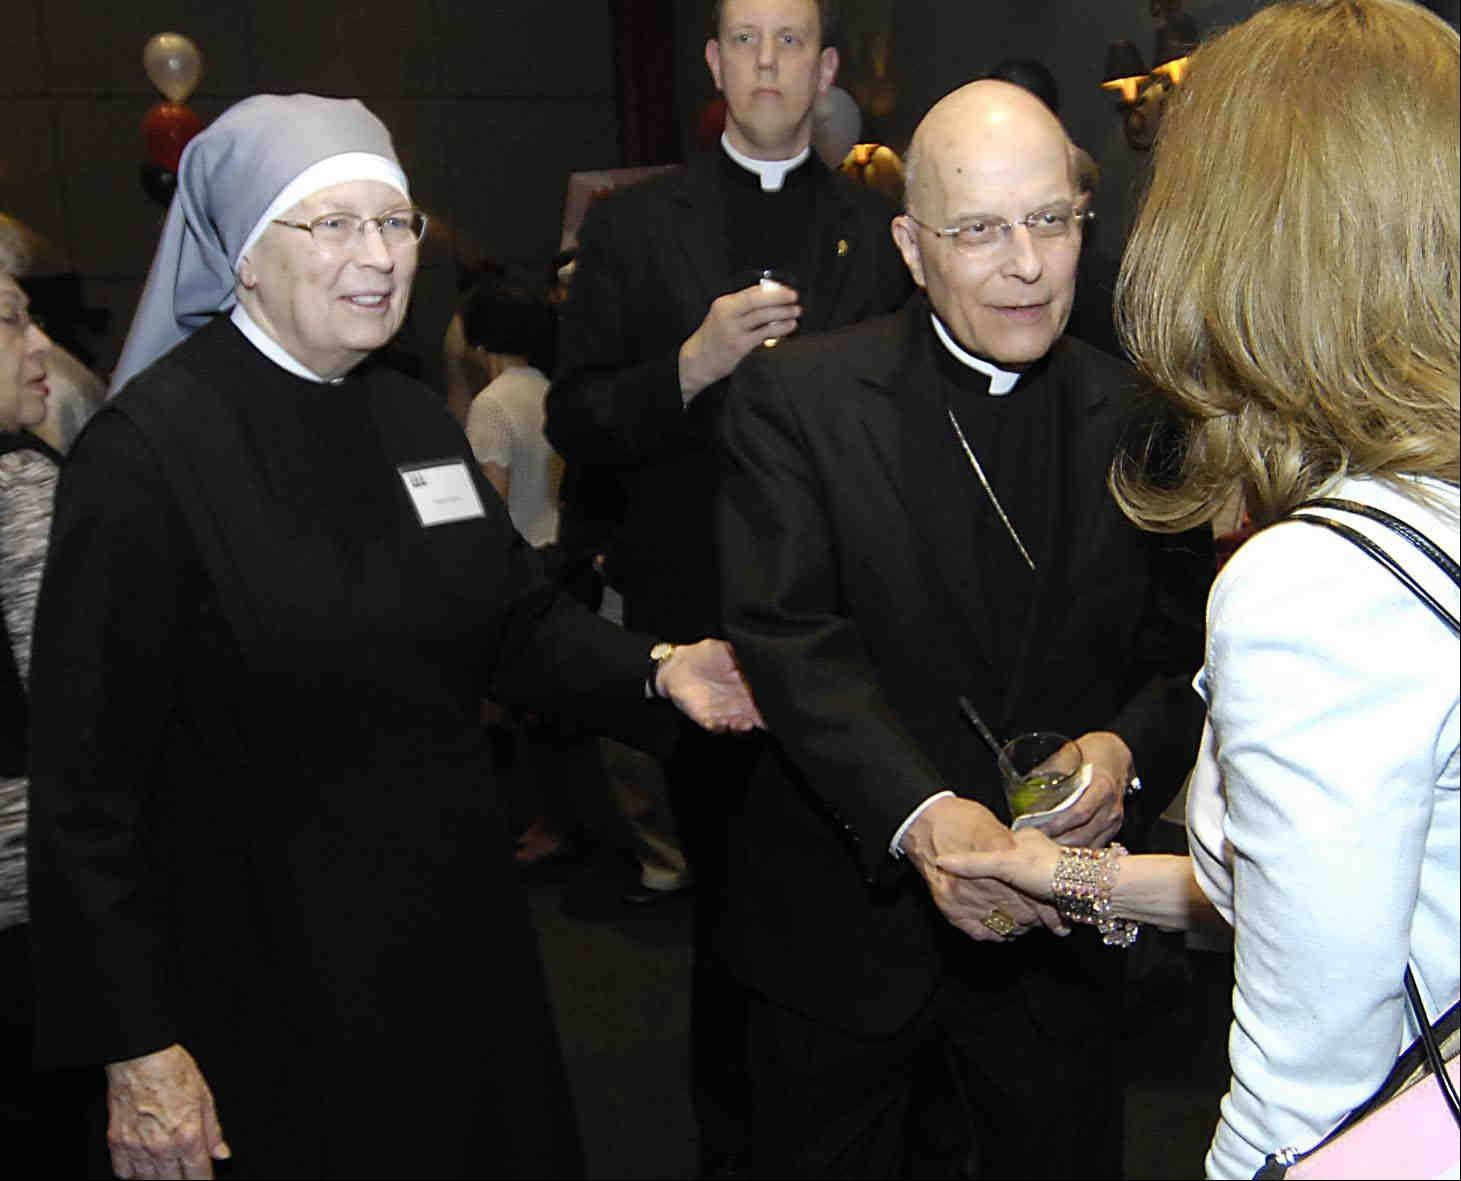 Francis Cardinal George greets people Sunday evening at the Amazing Grace Gala Dinner with Mother Marguerite McCarthy, President of Little Sisters of the Poor at St. Joseph's Home for the Elderly.